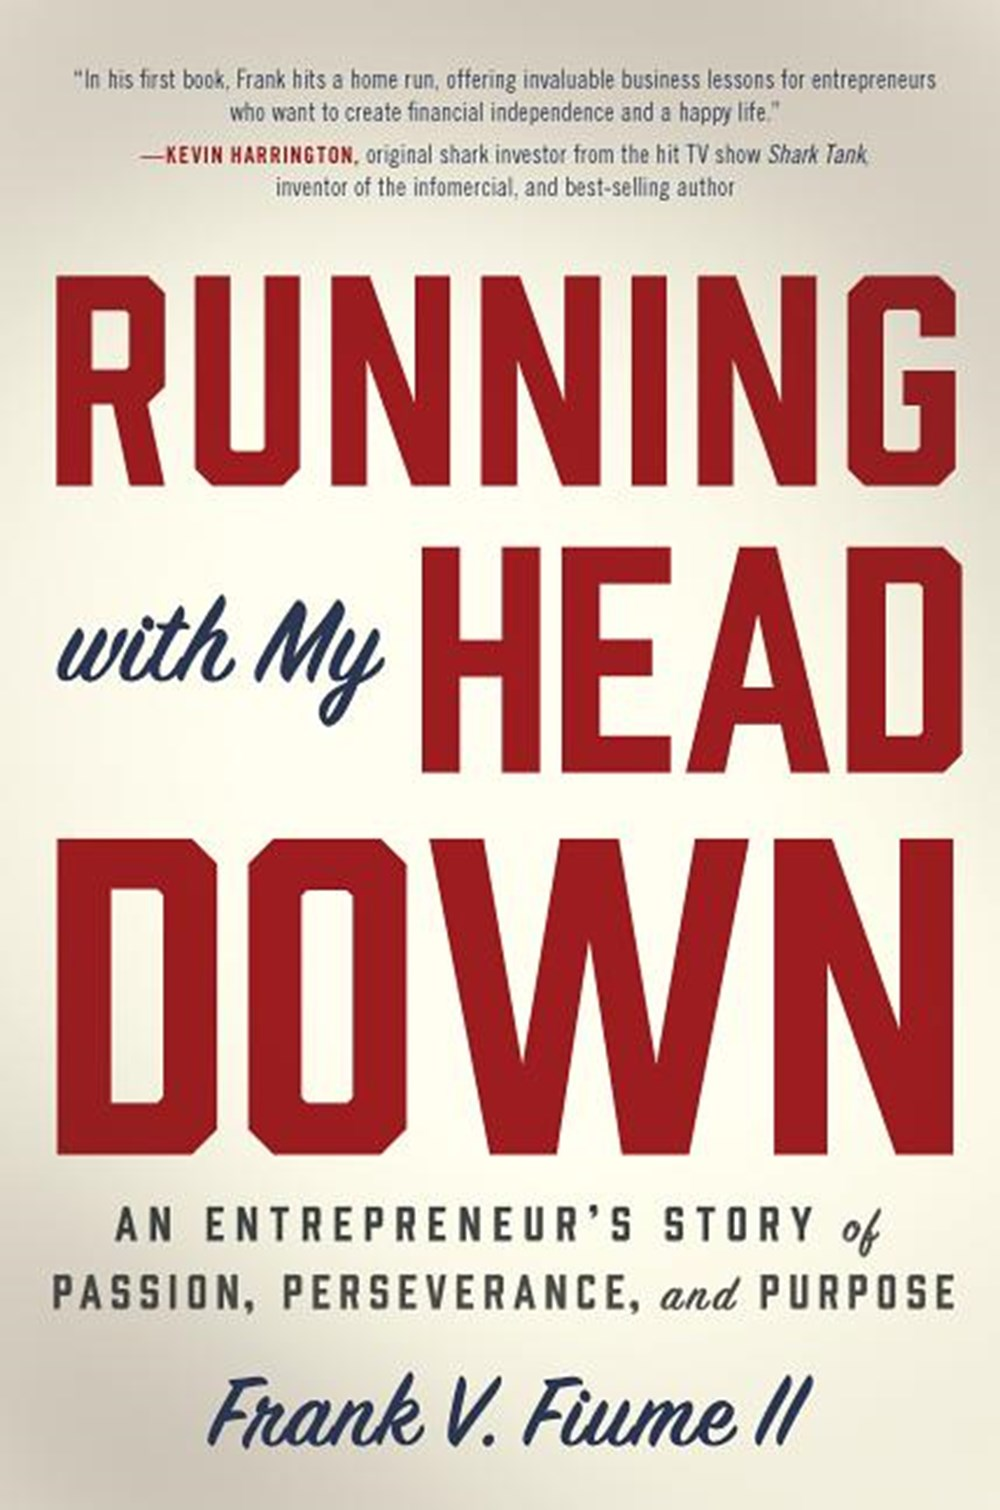 Running with My Head Down An Entrepreneur's Story of Passion, Perseverance, and Purpose